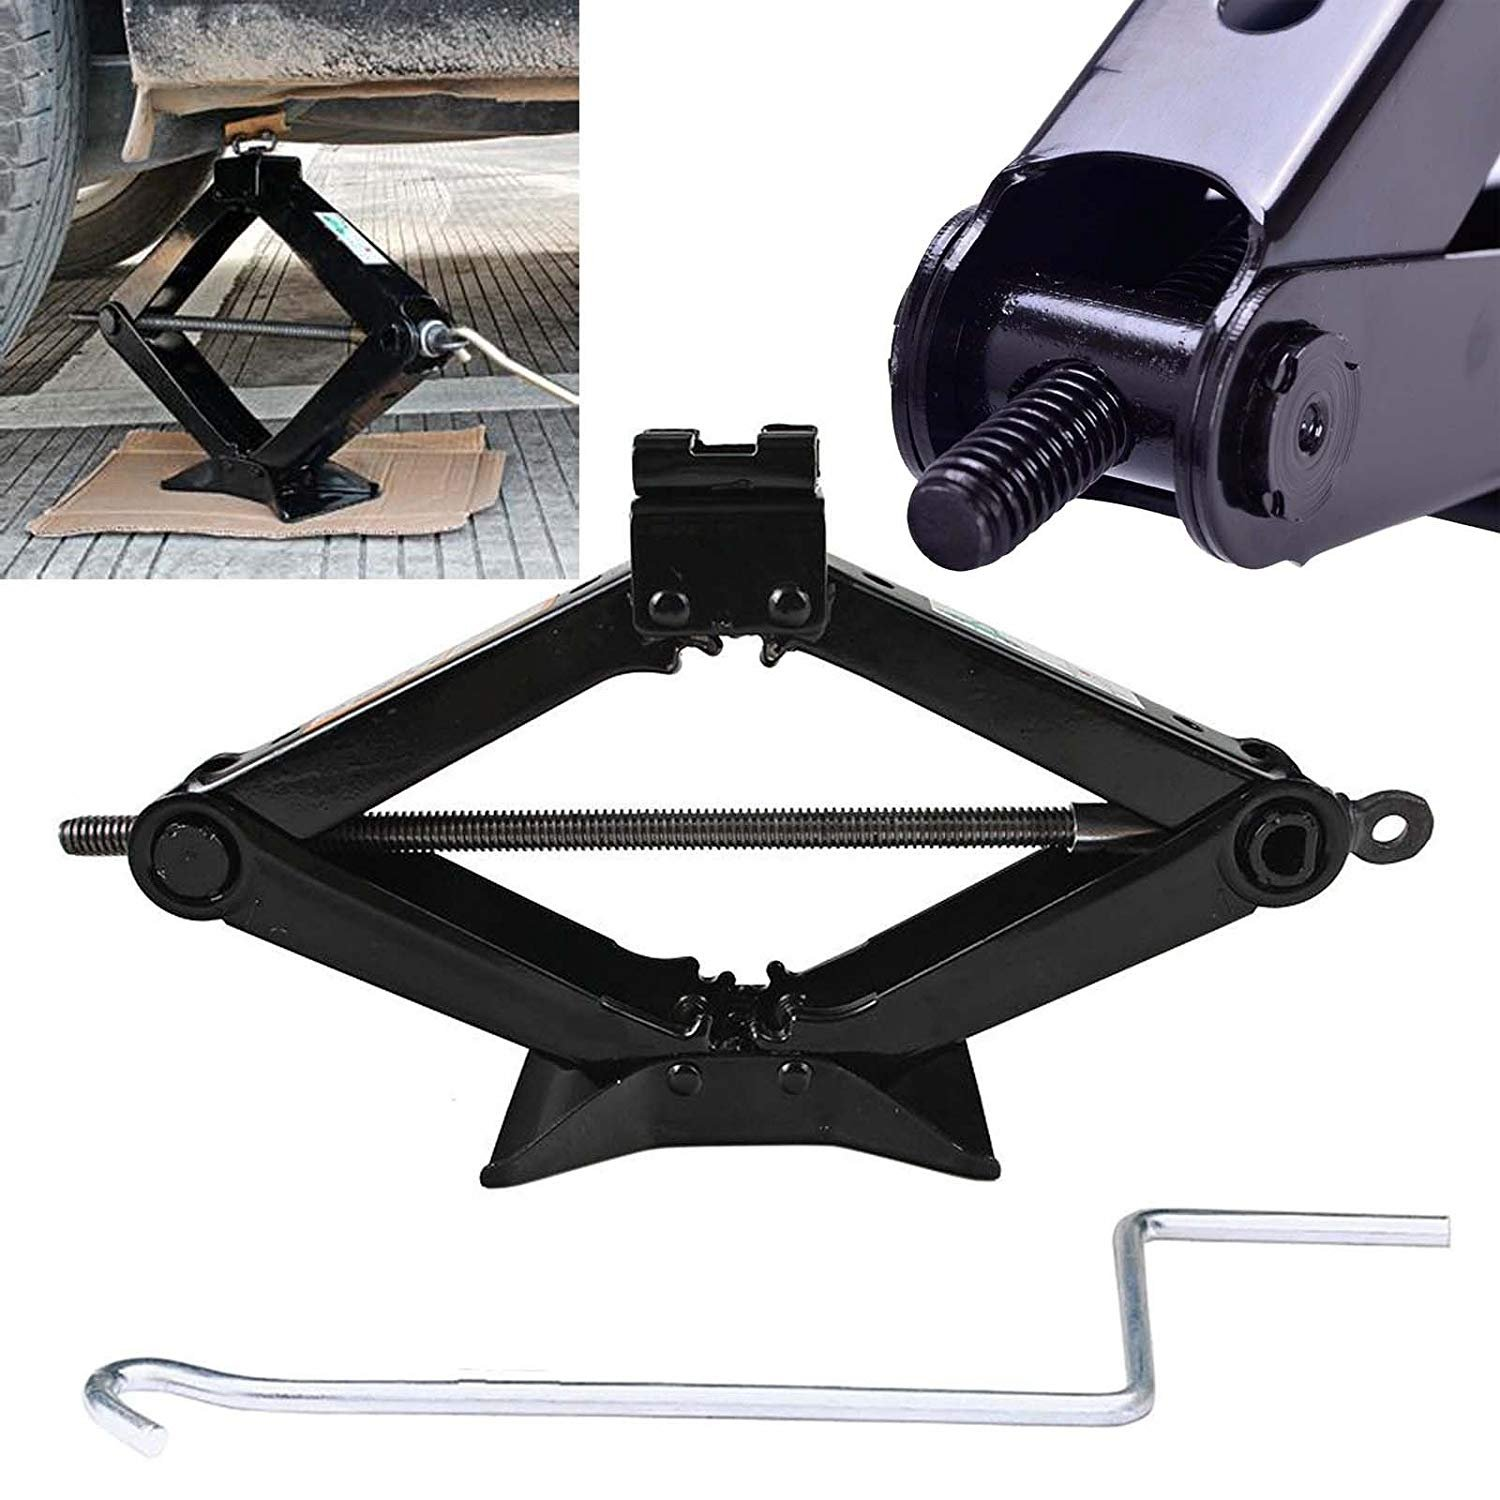 Heavy Duty Scissor Lift Jack Universal 4410 LB Capacity with Effortless Speed Handle for Car Auto SUV Truck